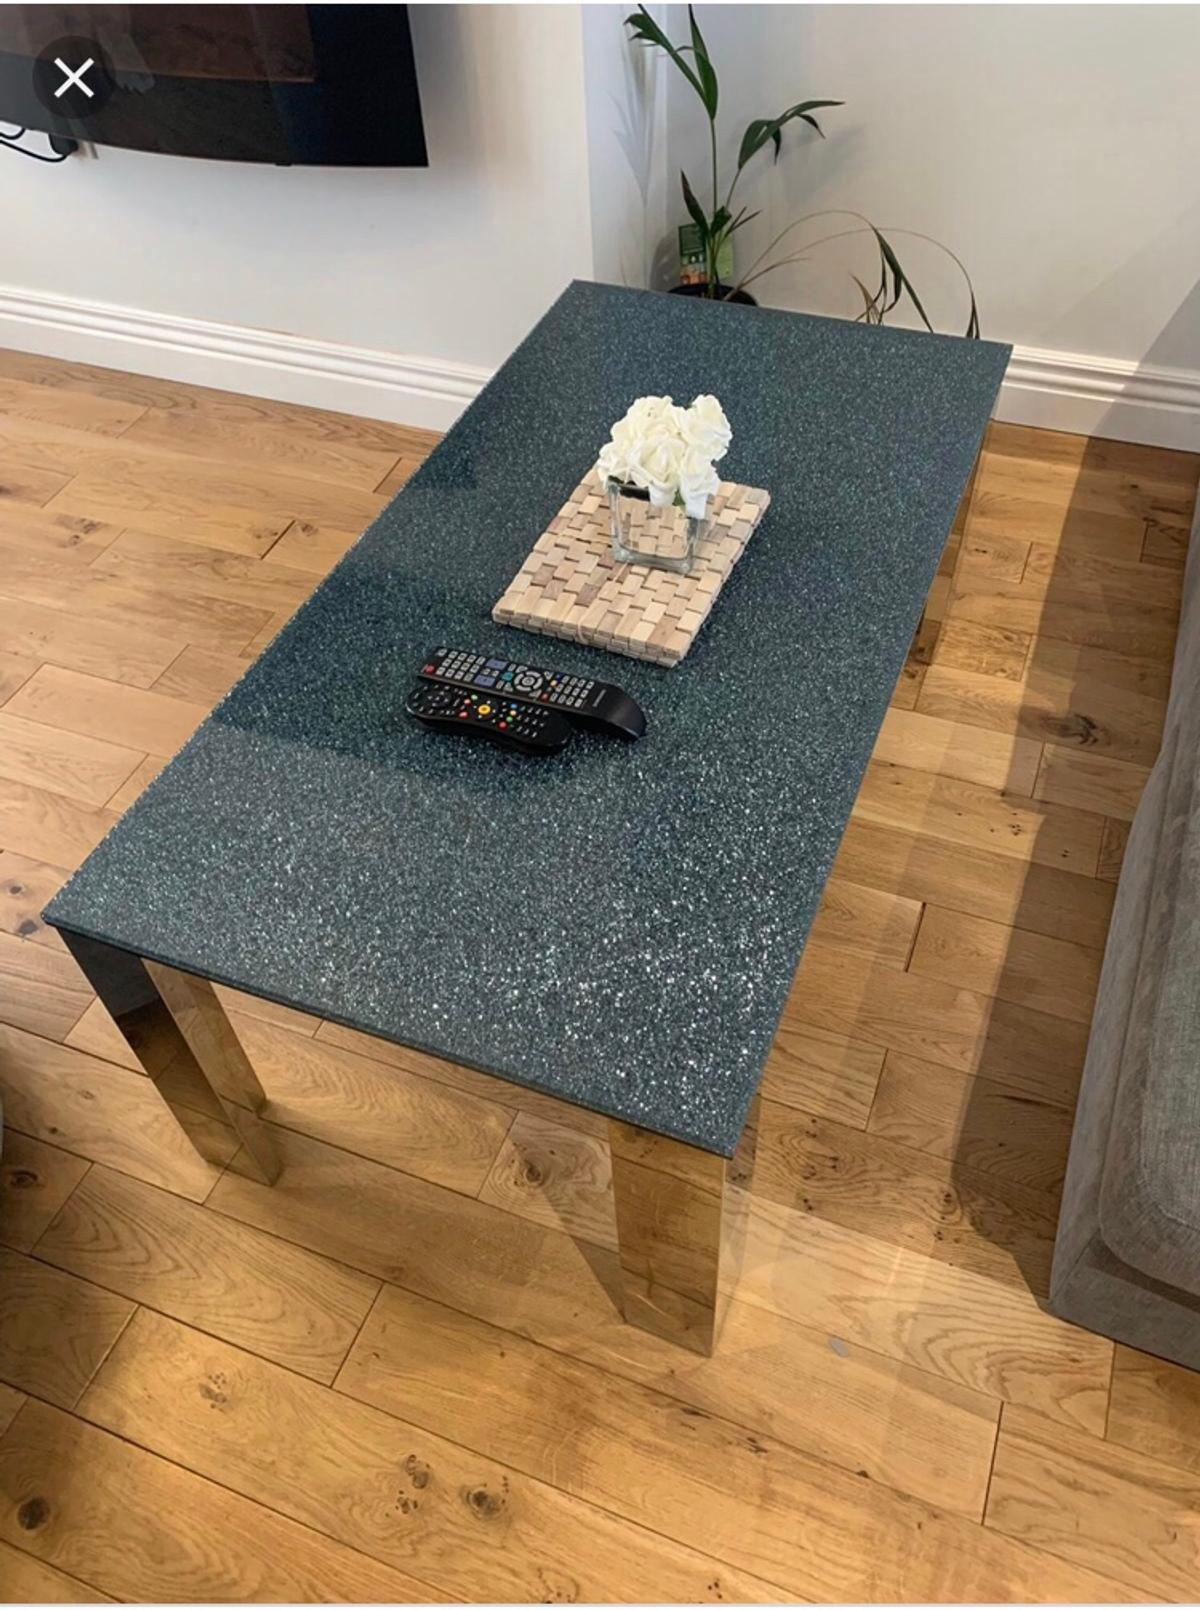 Dfs Shattered Gl Coffee Table In Sk4 Stockport For